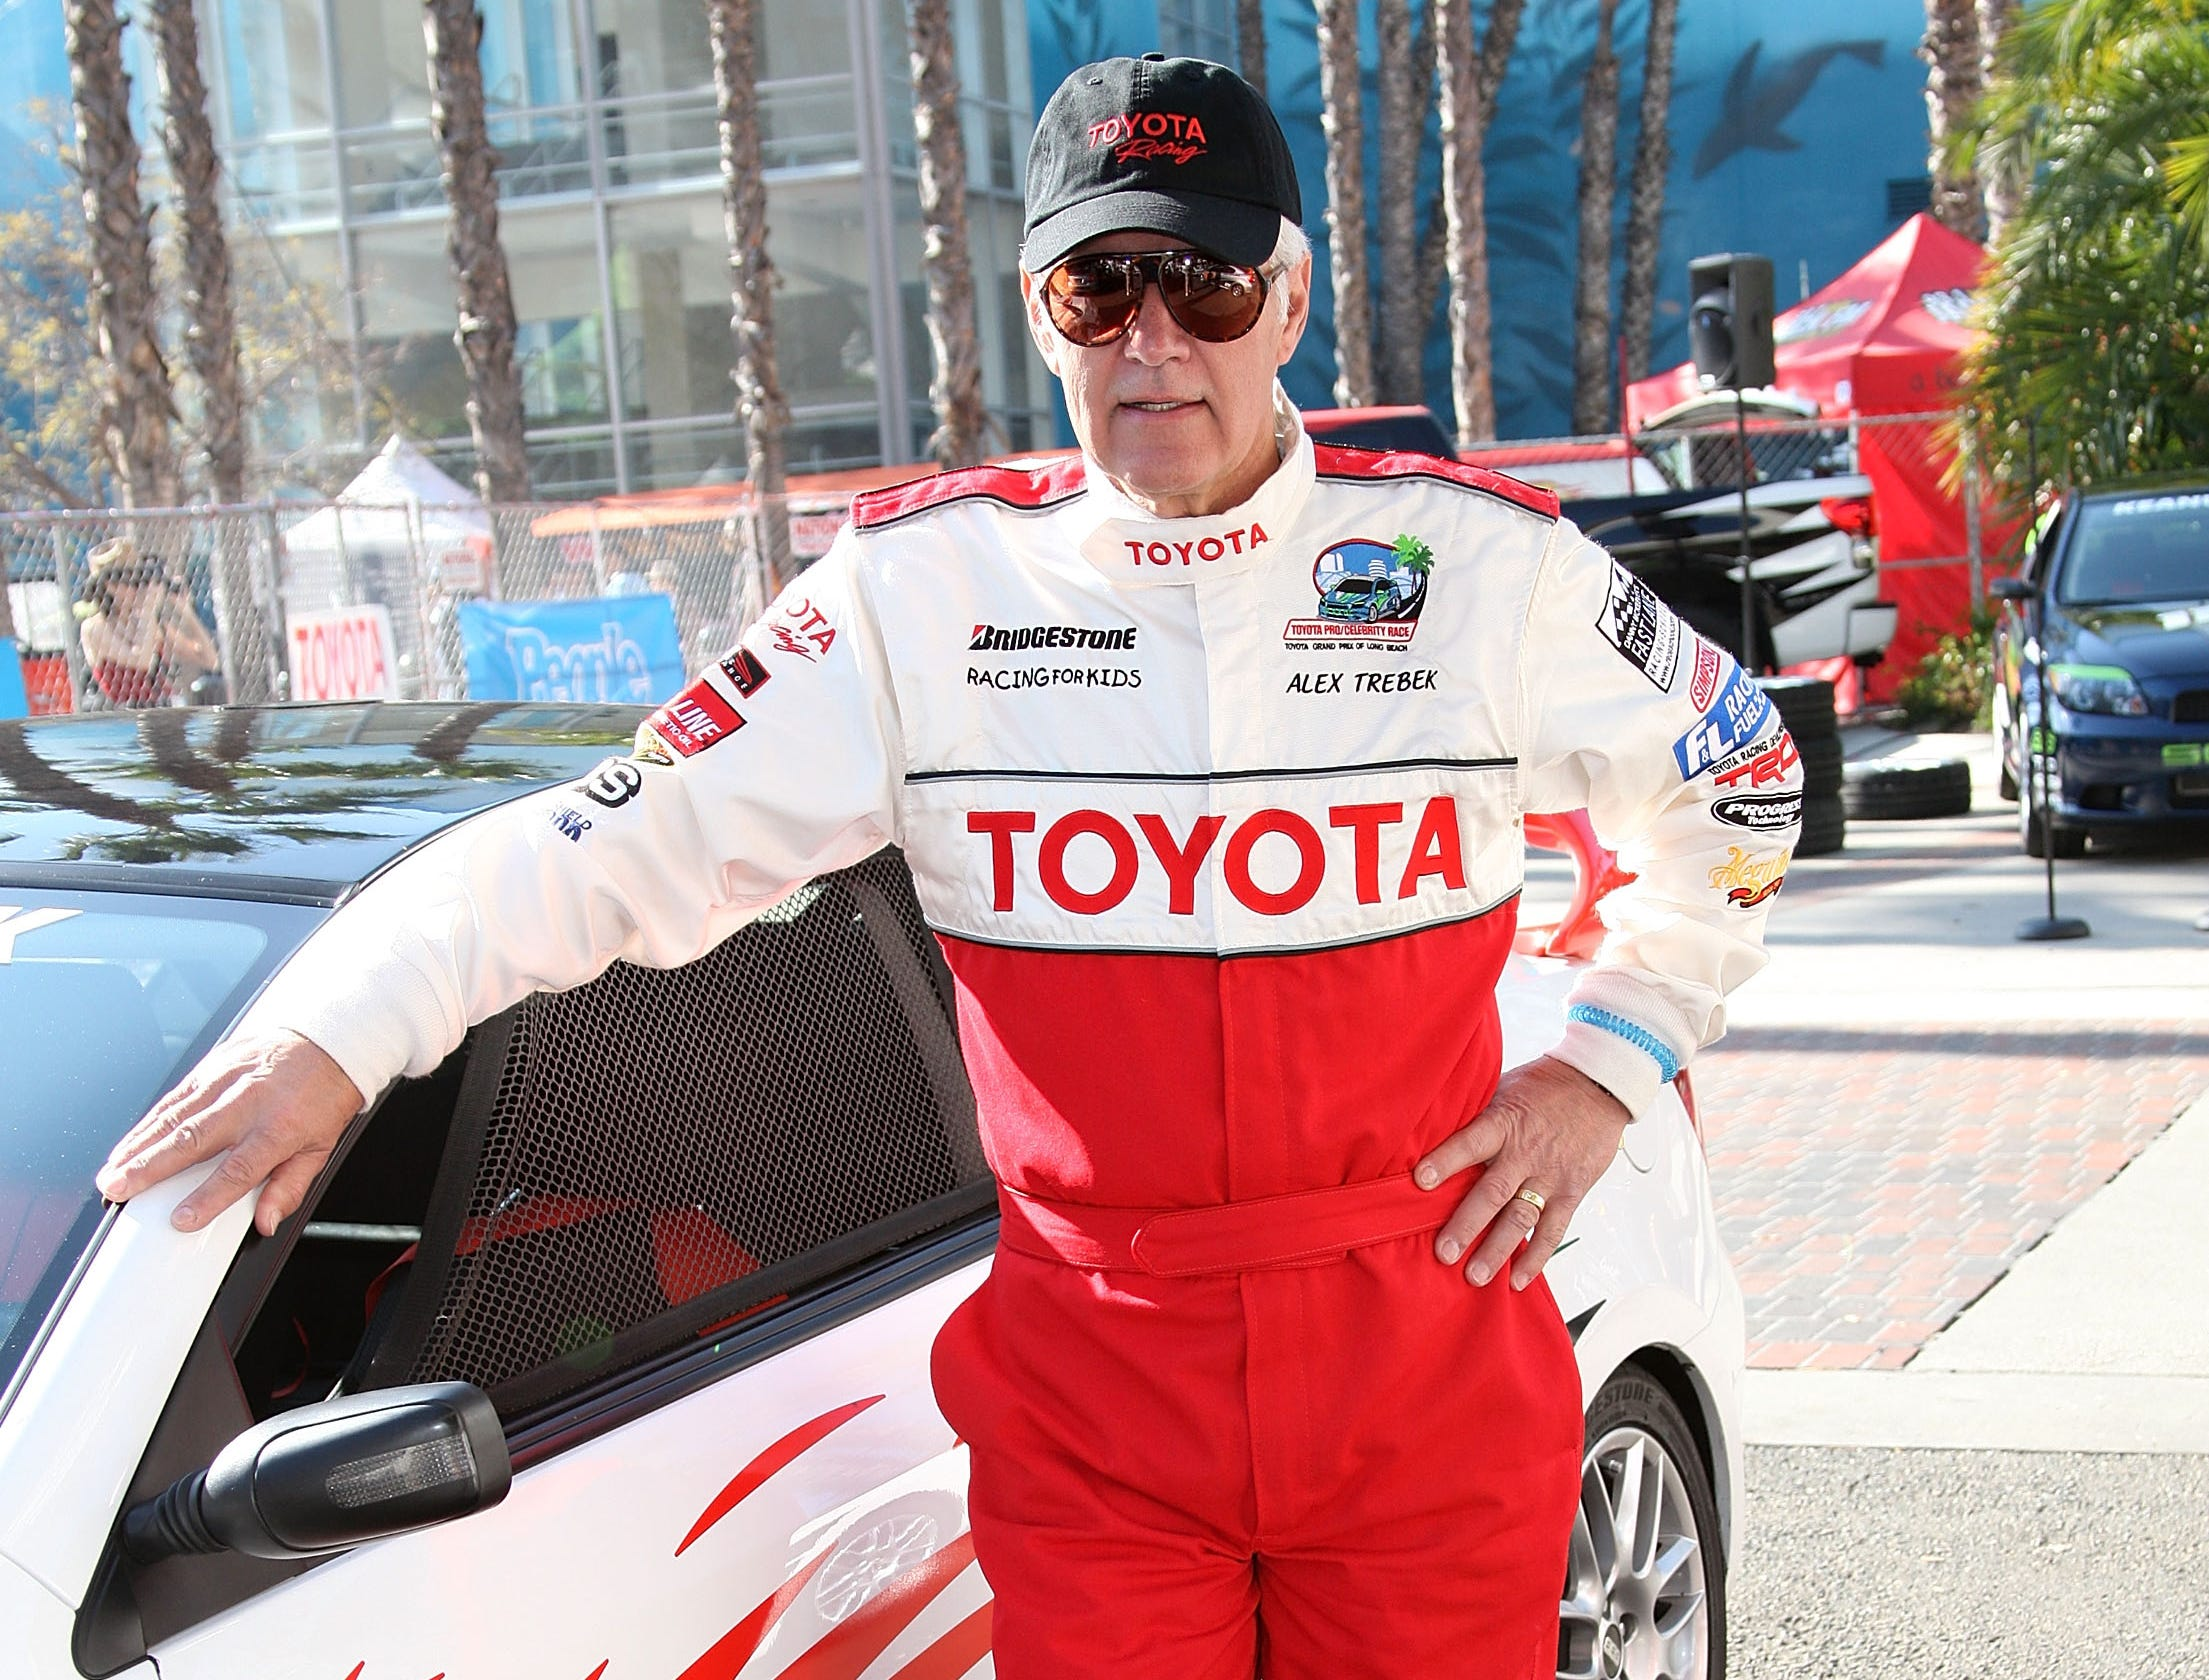 Television host Alex Trebek attends the celebrity race at the Toyota Grand Prix of Long Beach on April 18, 2009 in Long Beach, Calif.